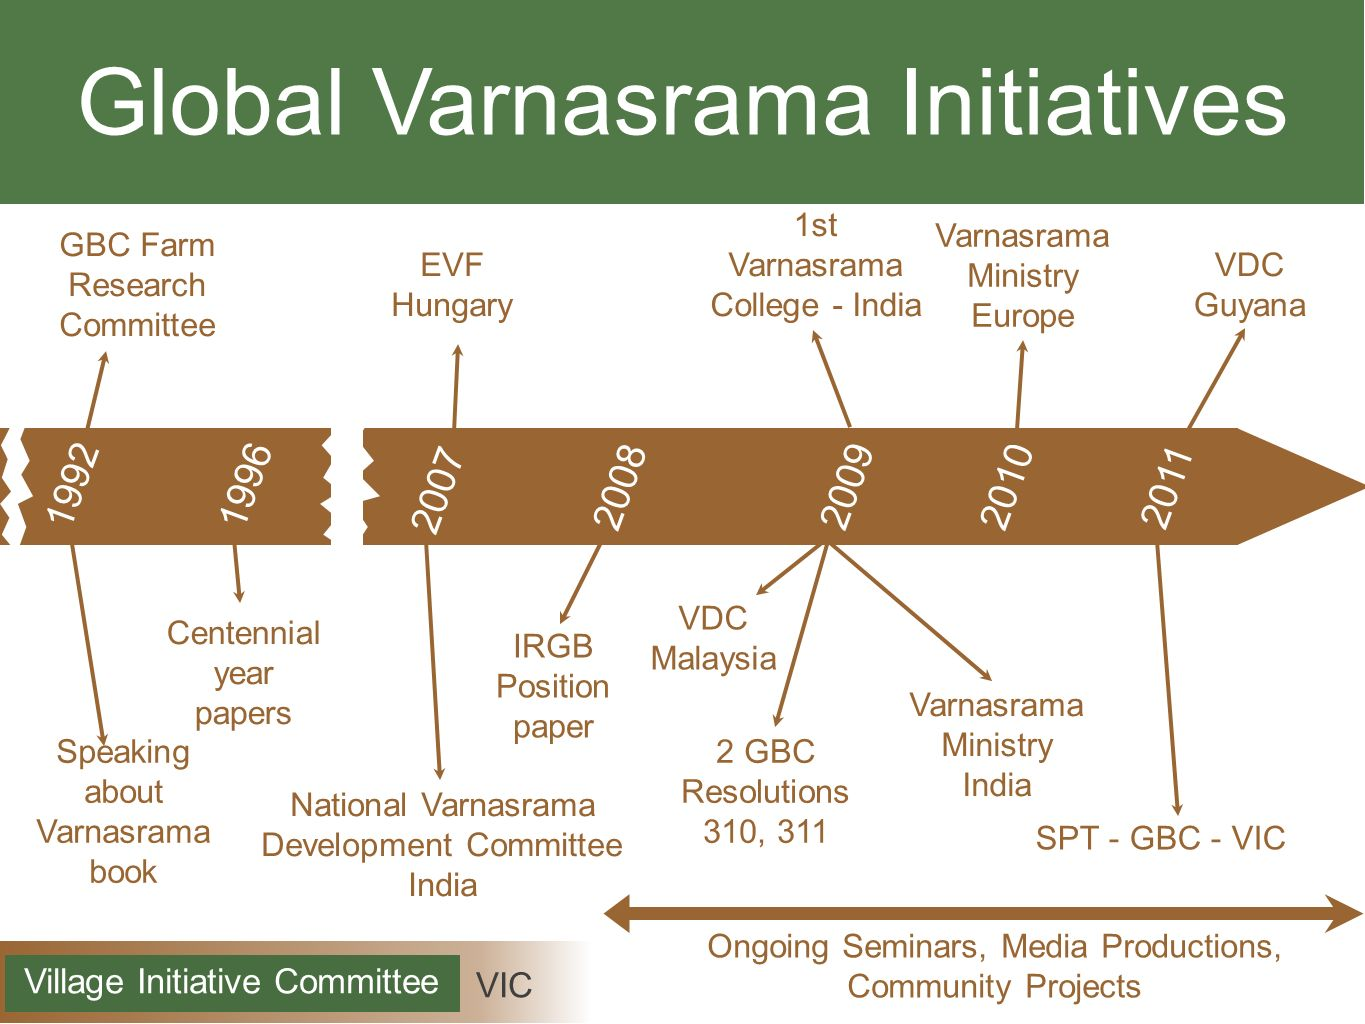 Achievements VIC Village Initiative Committee The Eight Petals Newsletter - 5,000 subscribers Global Varnasrama Mission - PAMHO Conference - 1100 members 3rd Year Varnasrama College at Sri Krsna Balarama Ksetra - South India 3rd Varnasrama Annual Seminar – Bali – 110 delegates 3rd International Varnasrama Seminar in Krishna Valley 4th Varnasrama Annual Seminar – Sri Mayapur Dhama Pillars of Sustainability Seminar - Hungary - 15 countries attended Five day Seminar – Malaysia – Varnasrama College - 30 delegates Chanakya Academy of Leadership Stratagem - IDVM - India Parasuram Academy of Martial Arts - Kalari Yoga - IDVM - India Media Production (Books and DVDs) IDVM - India 3 devotees elected at local village council - 1 Deputy Mayor - Hungary New National Varnasrama Development Committees in Guyana, Indonesia 630 received training reaching out to 5000+